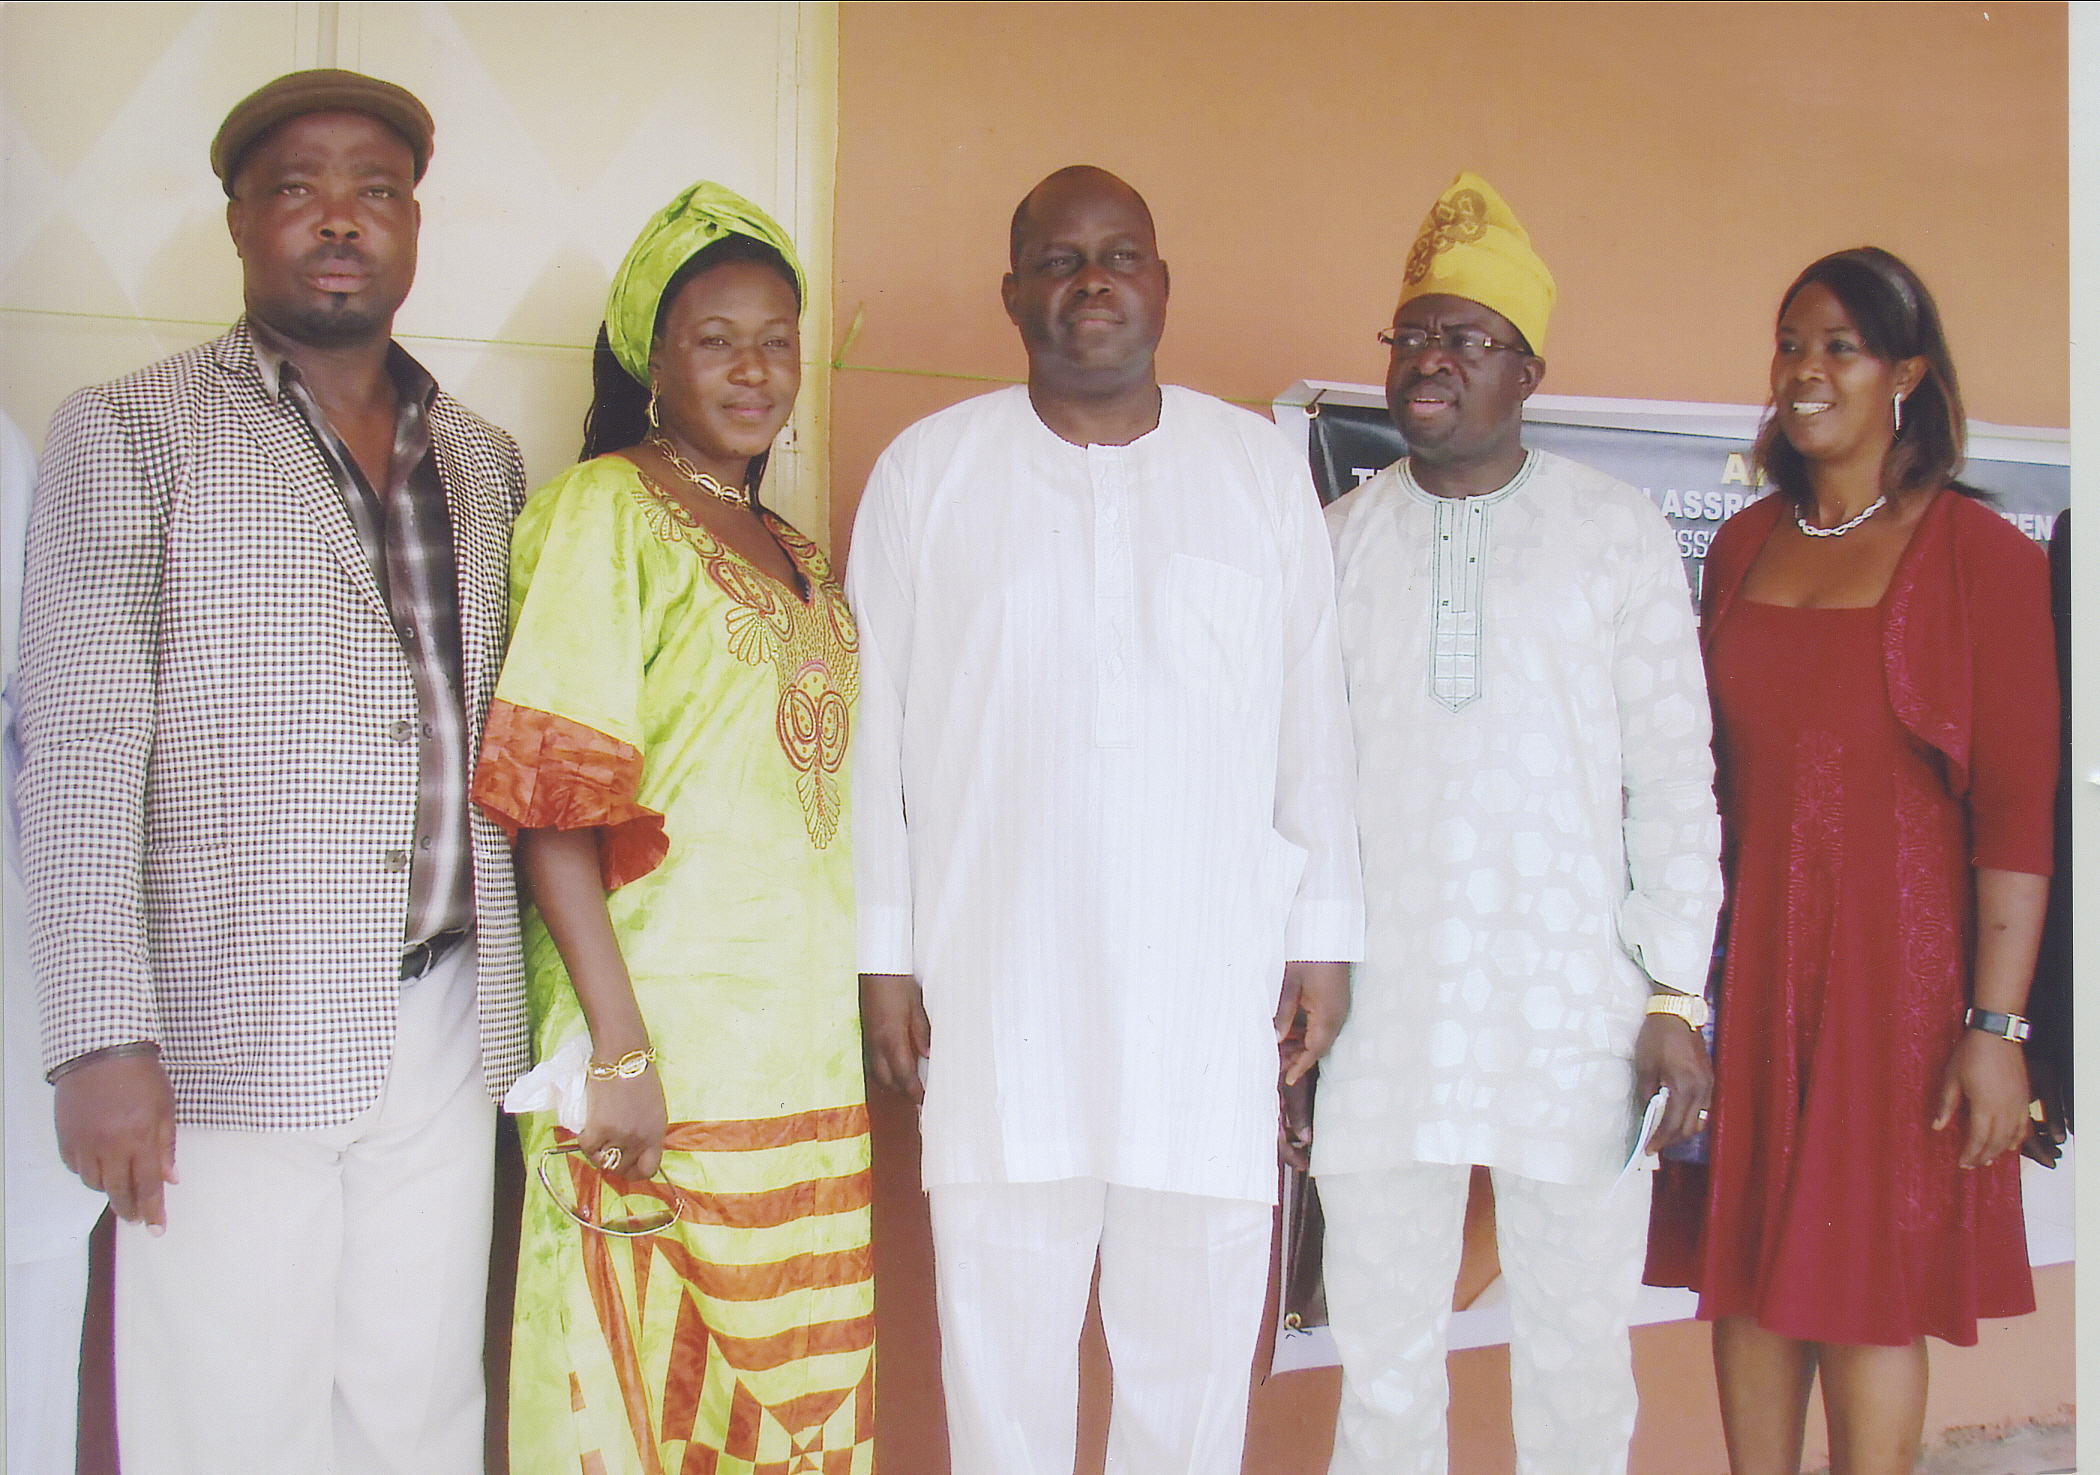 Dr Wale Bolorunduro - Osun State Finance Commisioner, Flanked By Mr And Mrs Falode, Dr And Mrs Ajifolokun